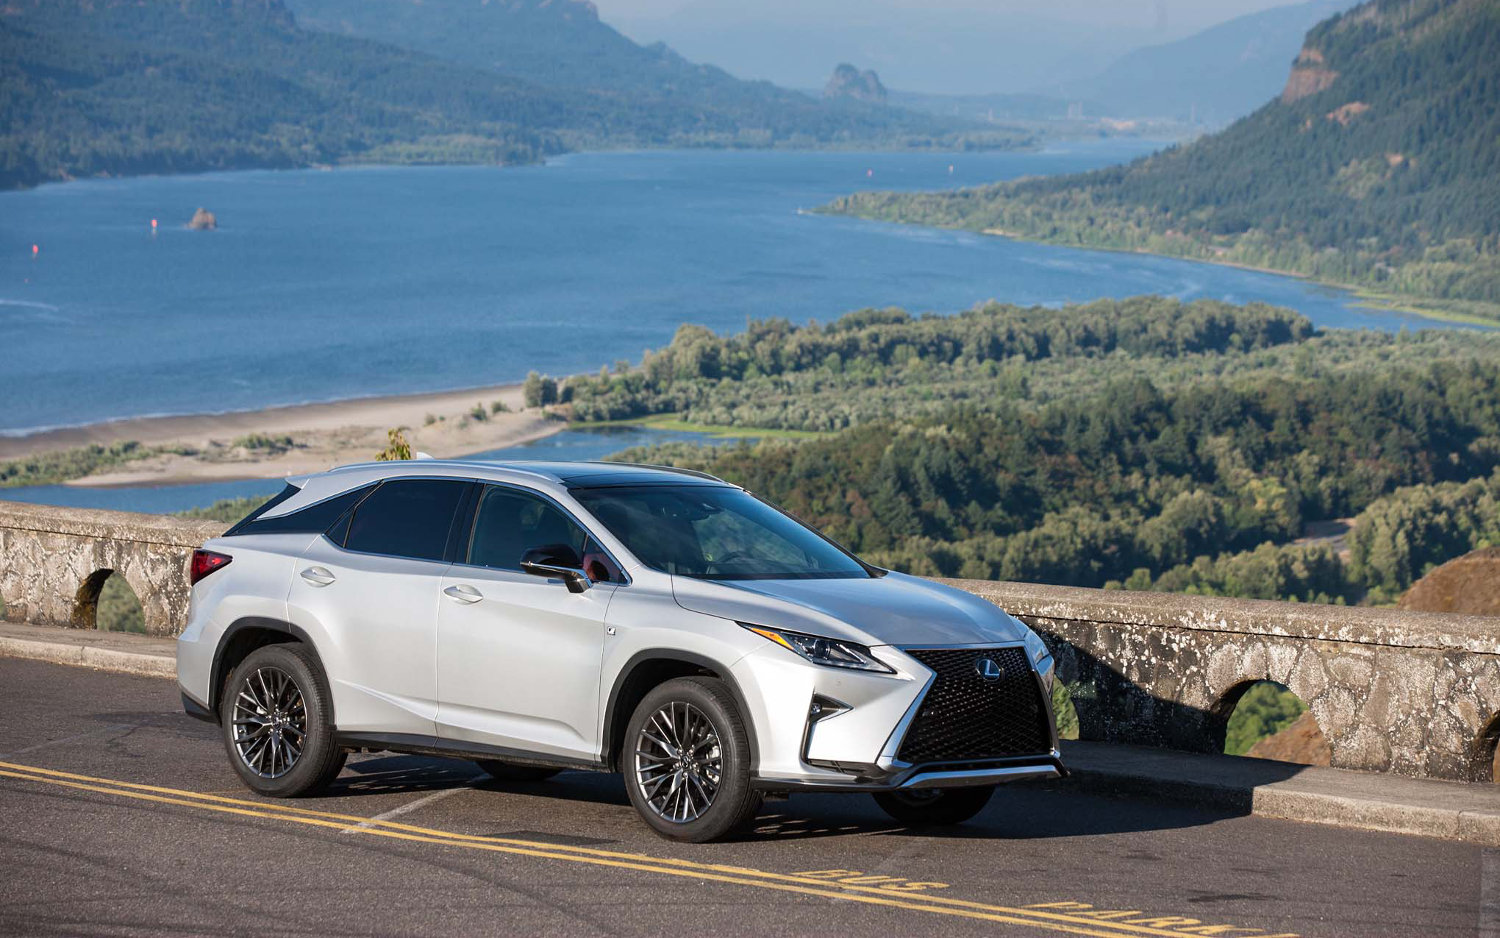 comparison lexus rx 350 2017 vs toyota chr 2018 suv drive. Black Bedroom Furniture Sets. Home Design Ideas